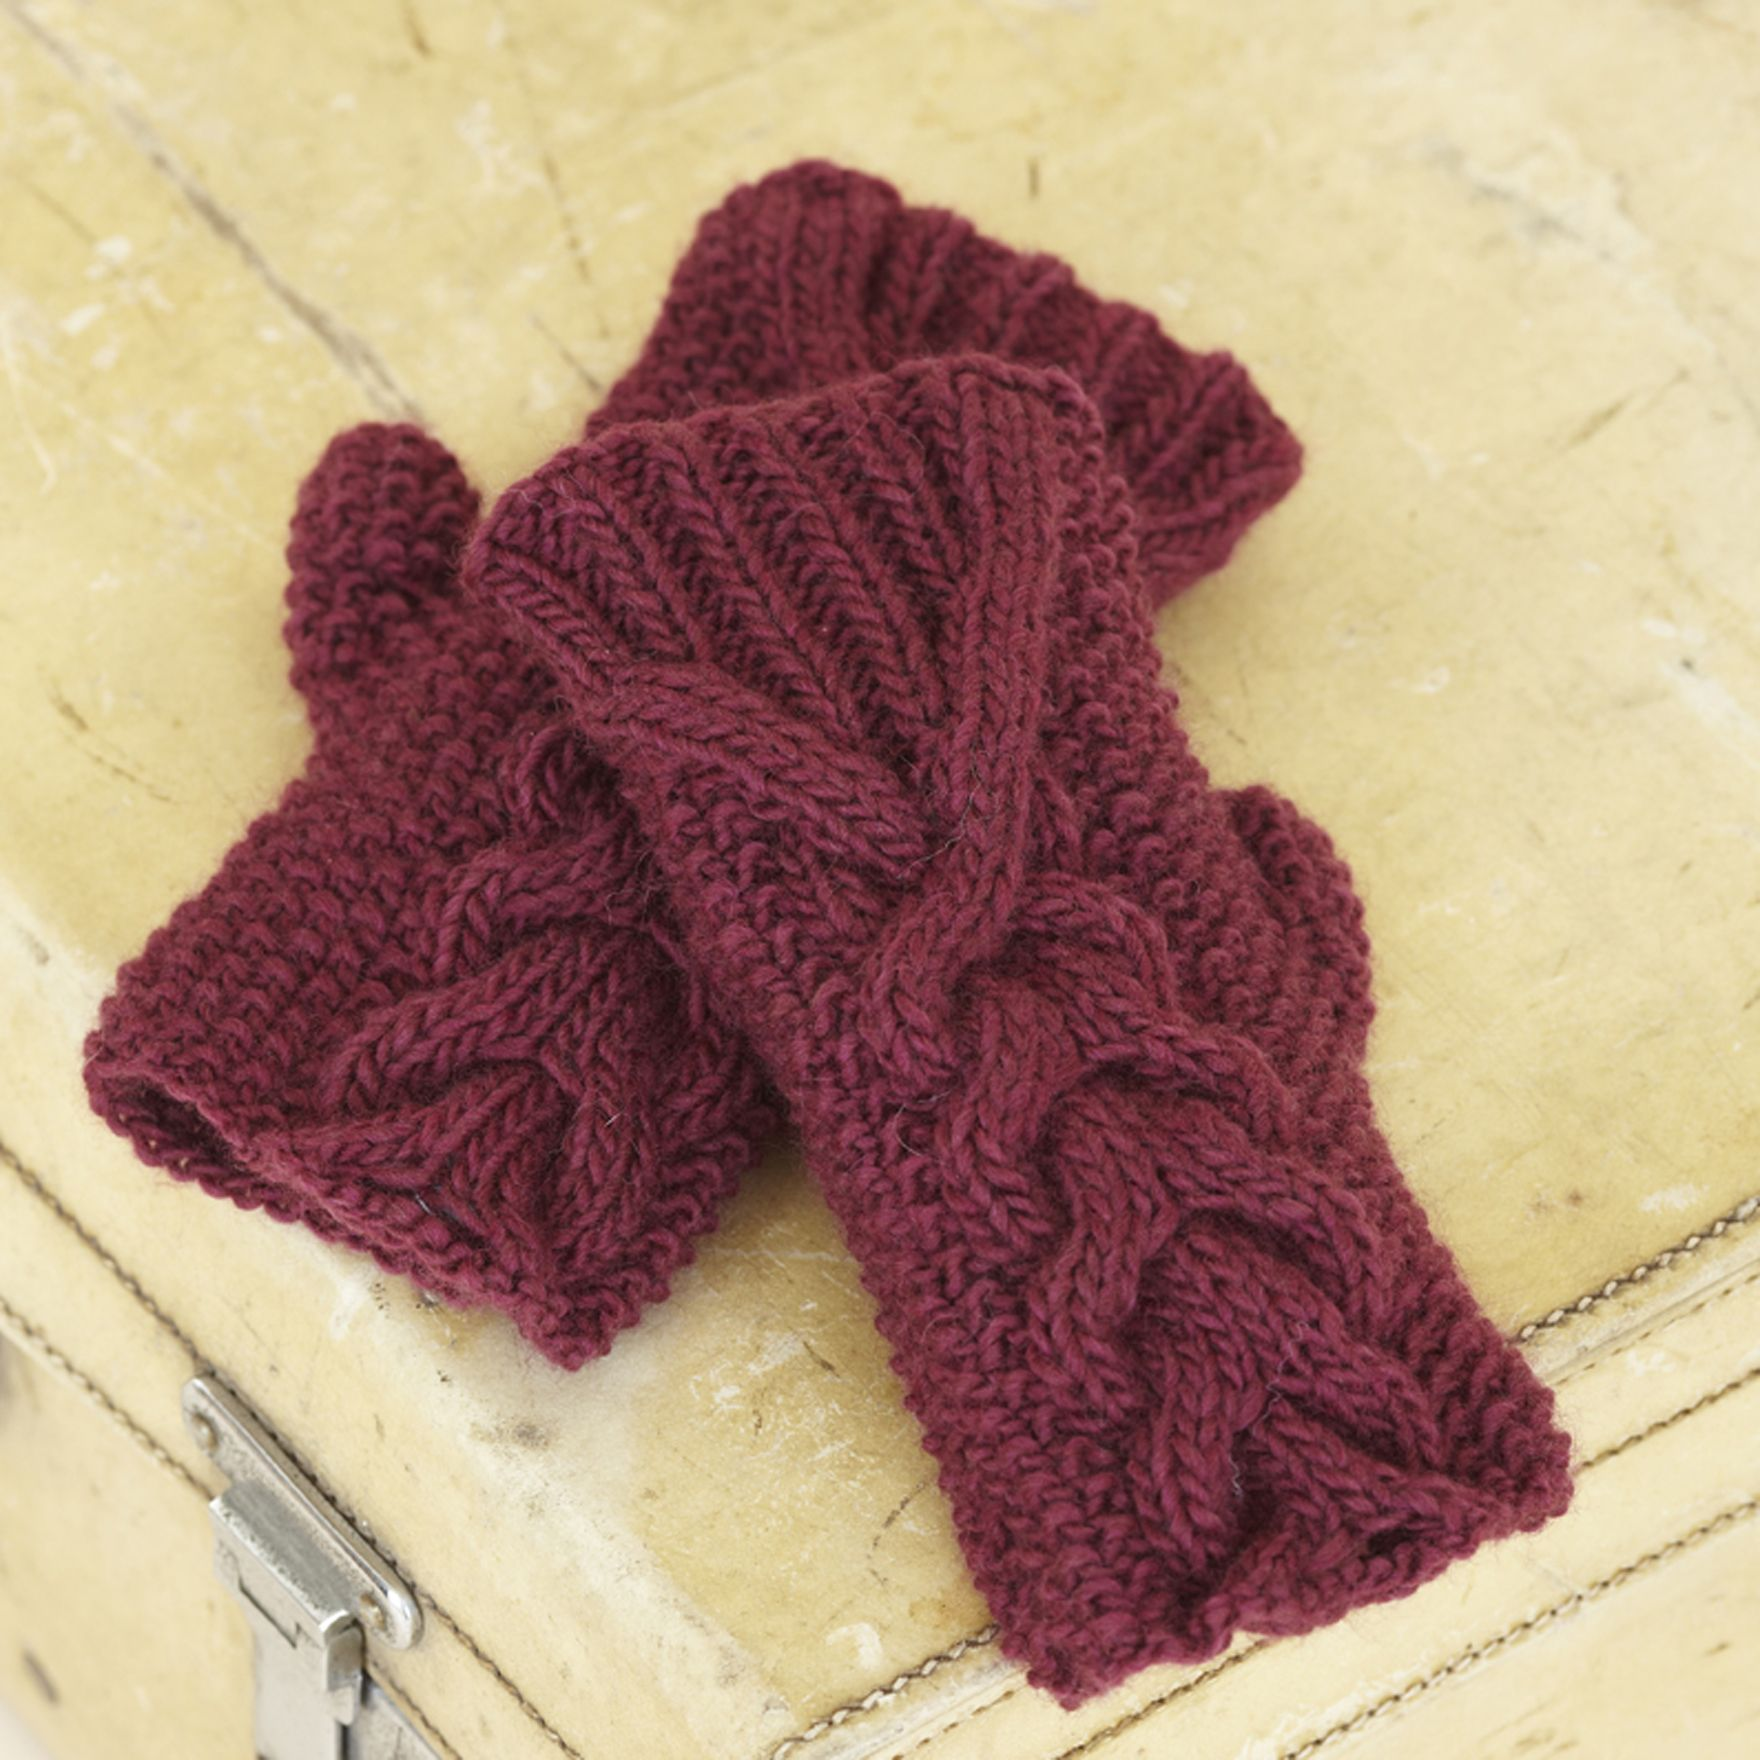 The Sublime London Girl Mitts from The Sublime Natural Aran hand knit book - incredible 3D cable texture.